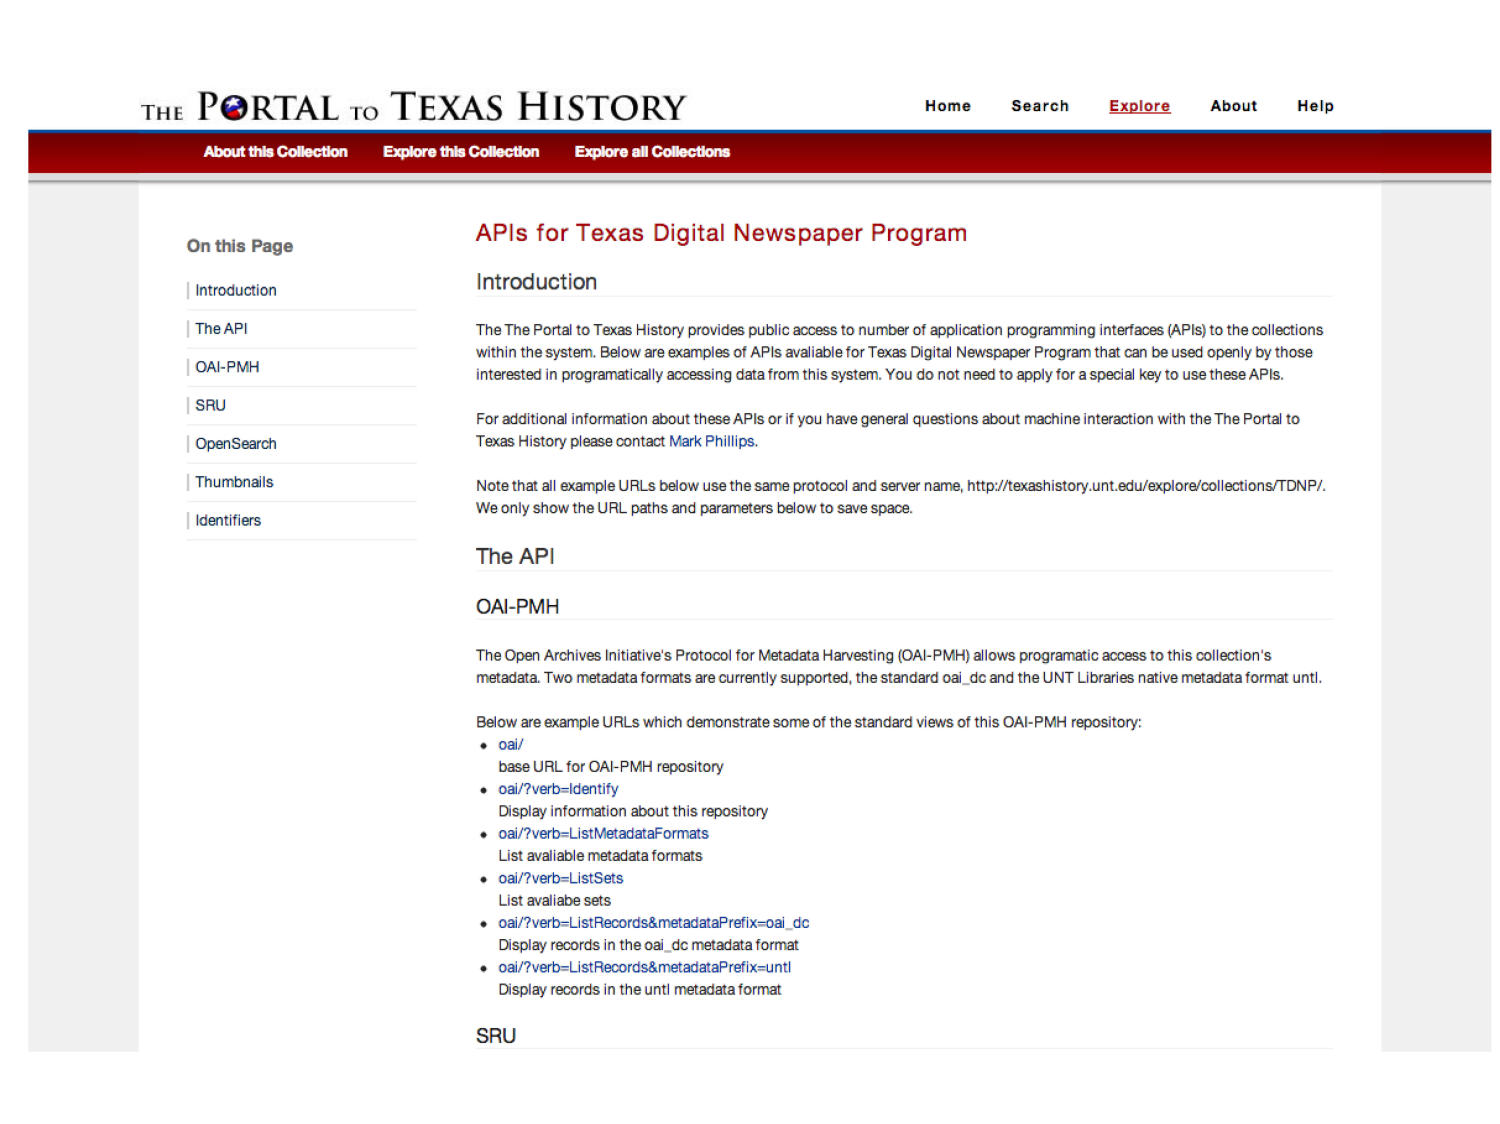 The Portal to Texas History: Technology Overview                                                                                                      [Sequence #]: 57 of 73